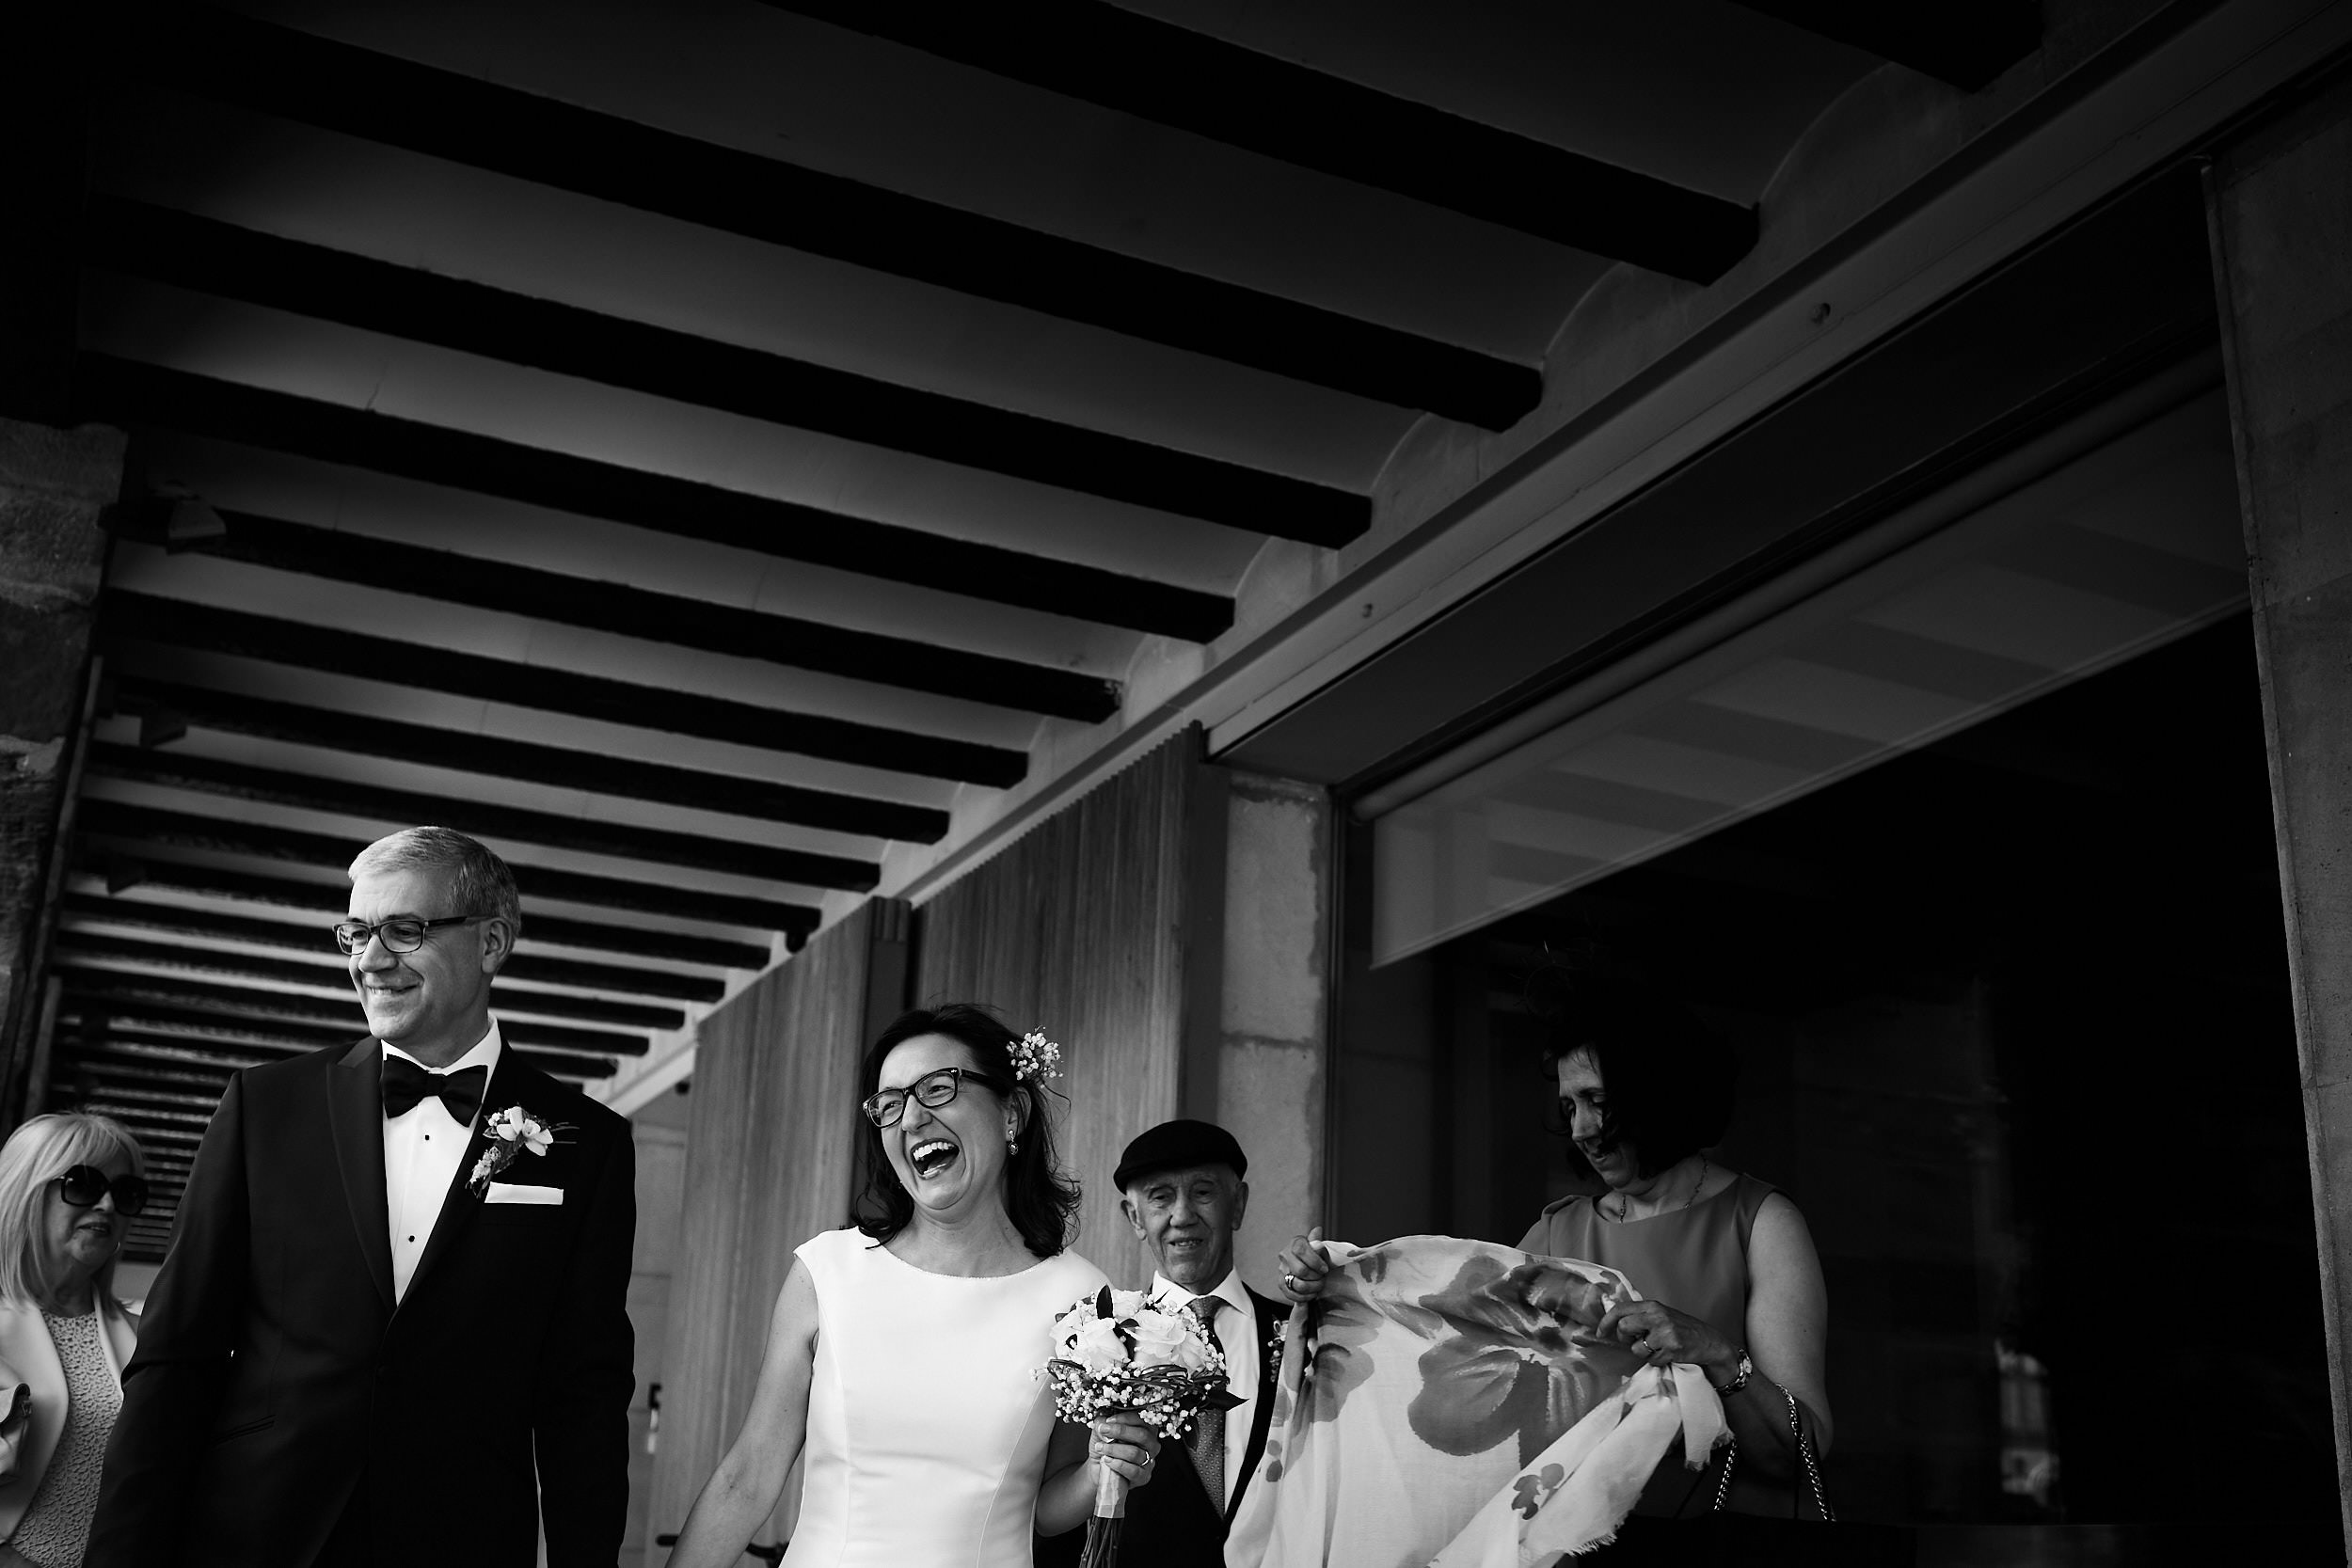 16/6/18 Mariló y Miguel, Wedding at La Arboleda del Echaurren, Ezcaray, La Rioja, Spain. Photo by James Sturcke | sturcke.org